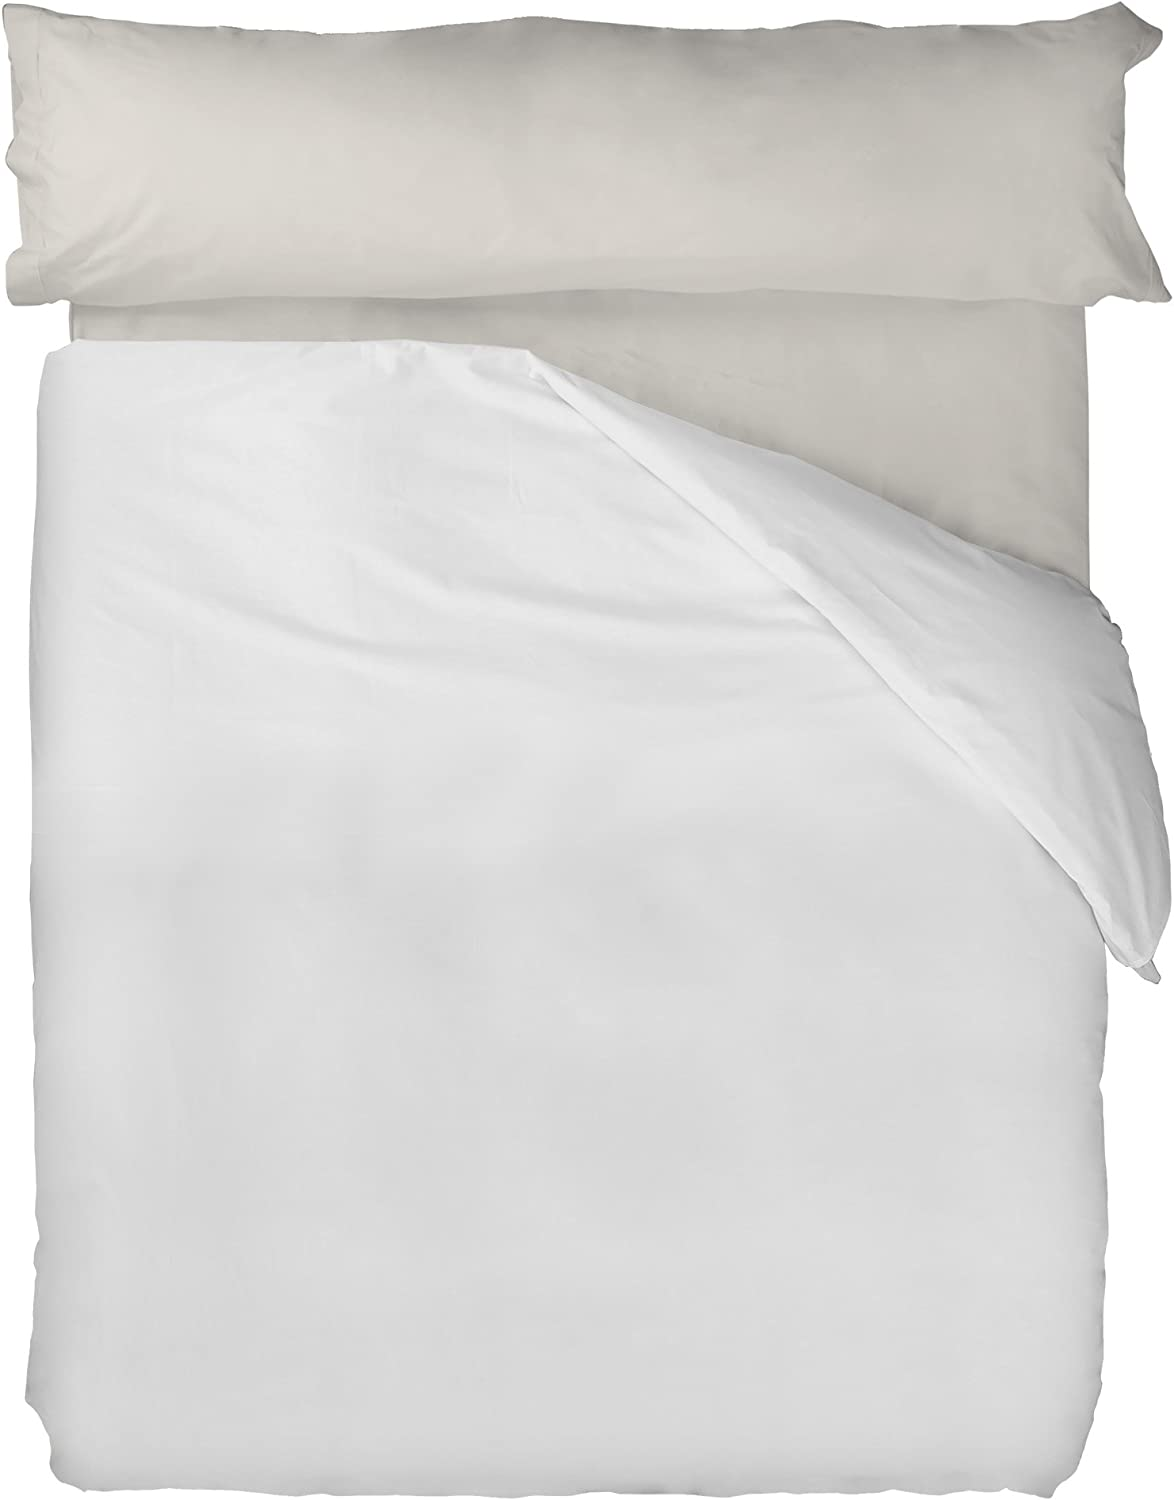 Habita Home Funda NORDICA Lisa Color Blanco ALGODÓN Cama 180 (270x260cm) Color Blanco: Amazon.es: Hogar